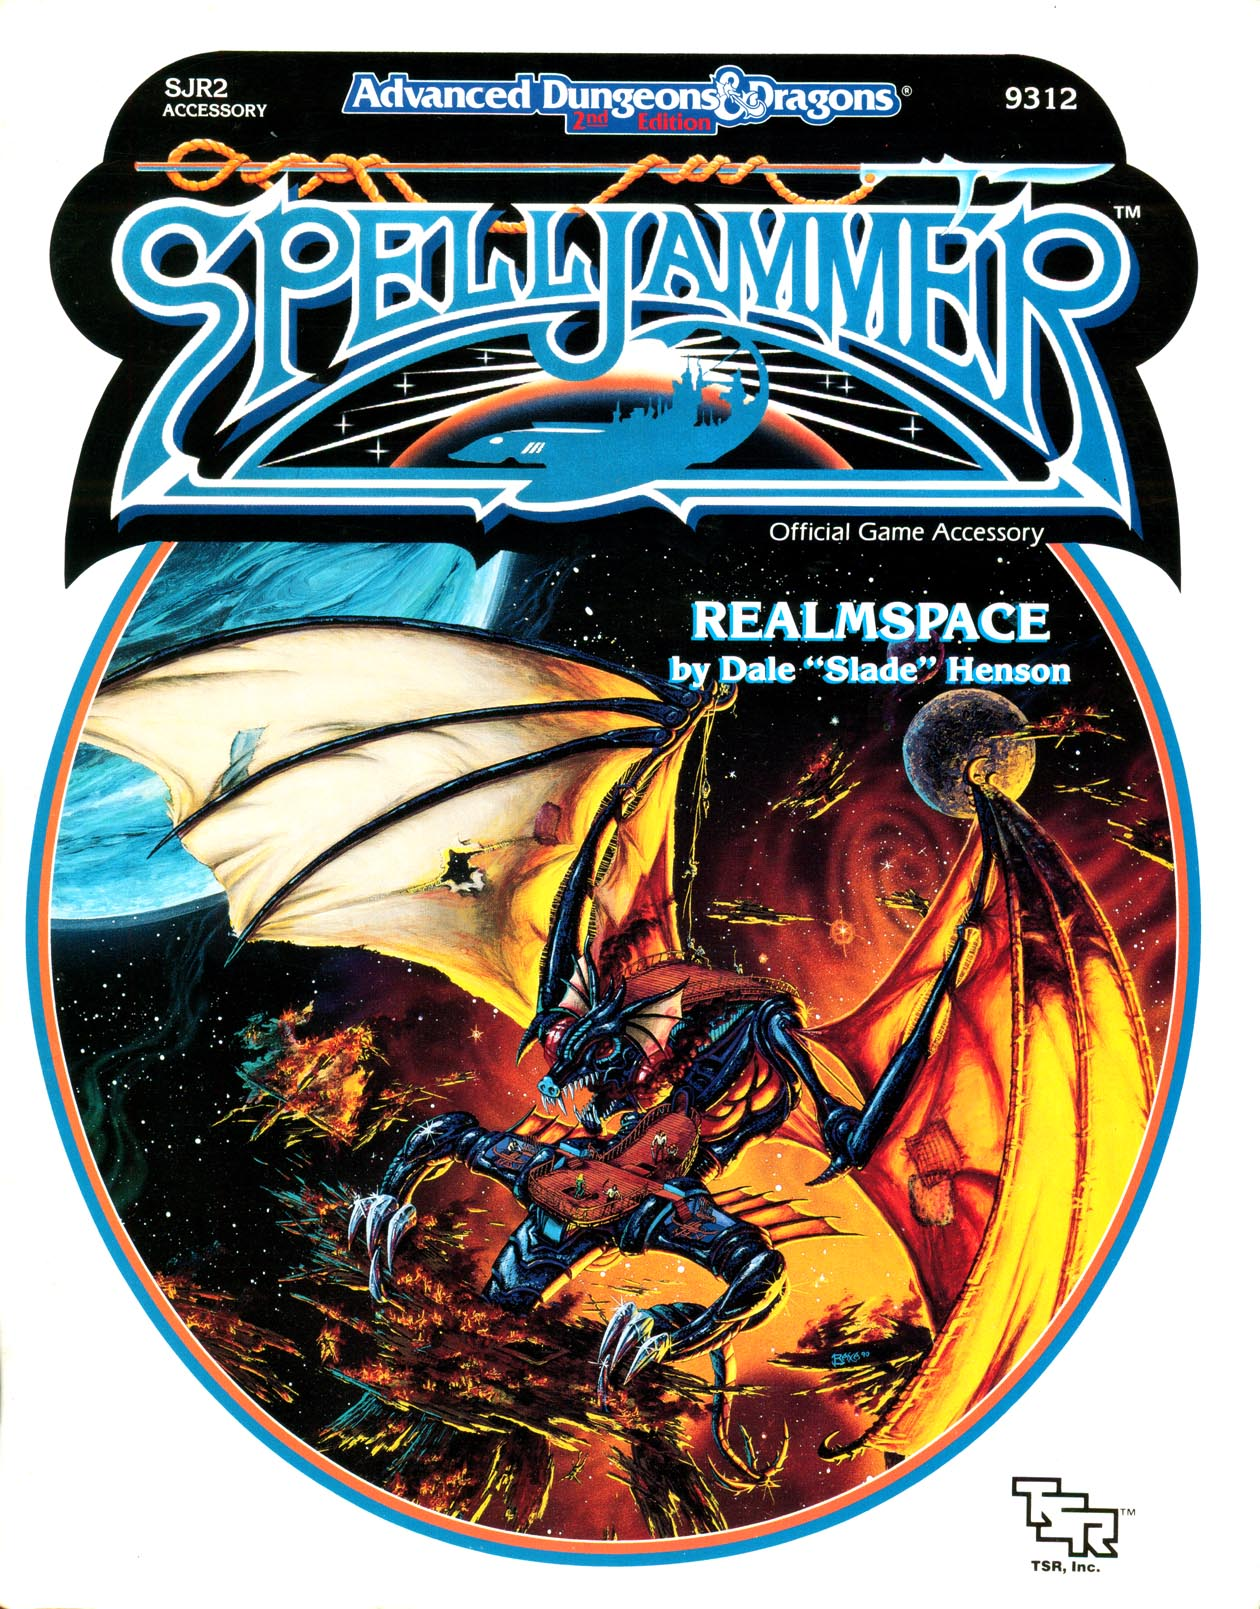 File:Spelljammer-Realmspace Book-Cover.jpg